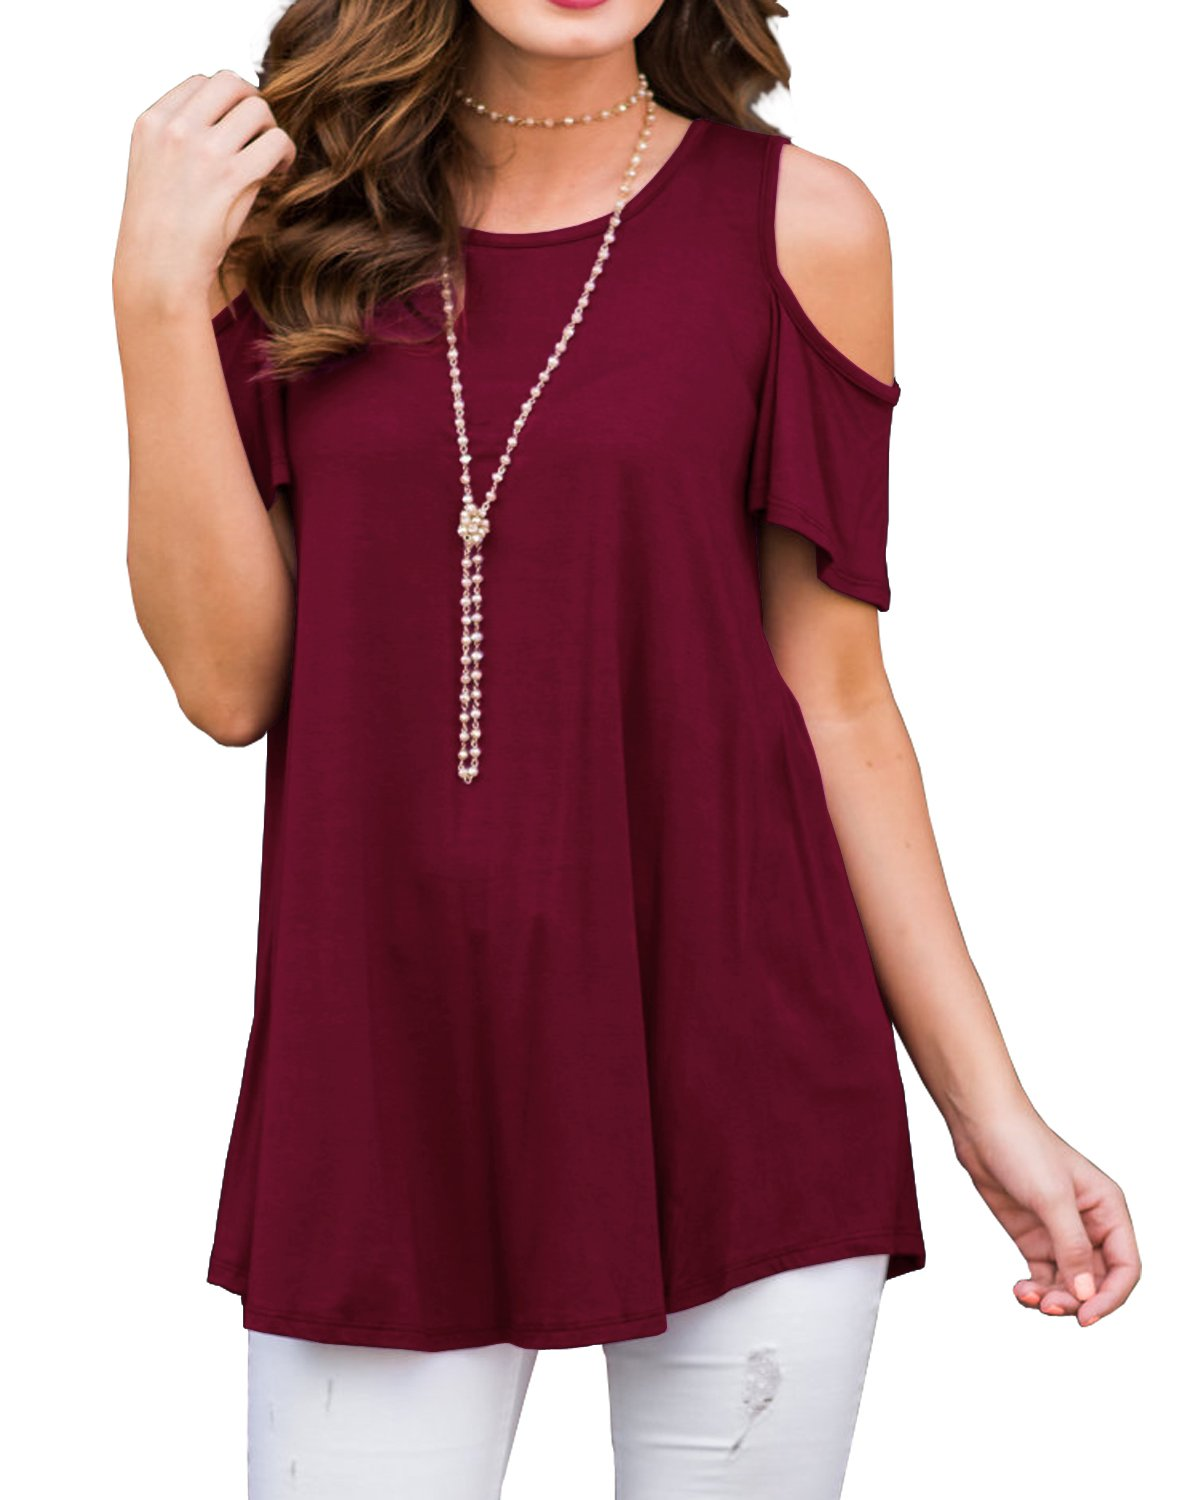 PrinStory Women's Short Sleeve Casual Cold Shoulder Tunic Tops Loose Blouse Shirts Wine Red-L